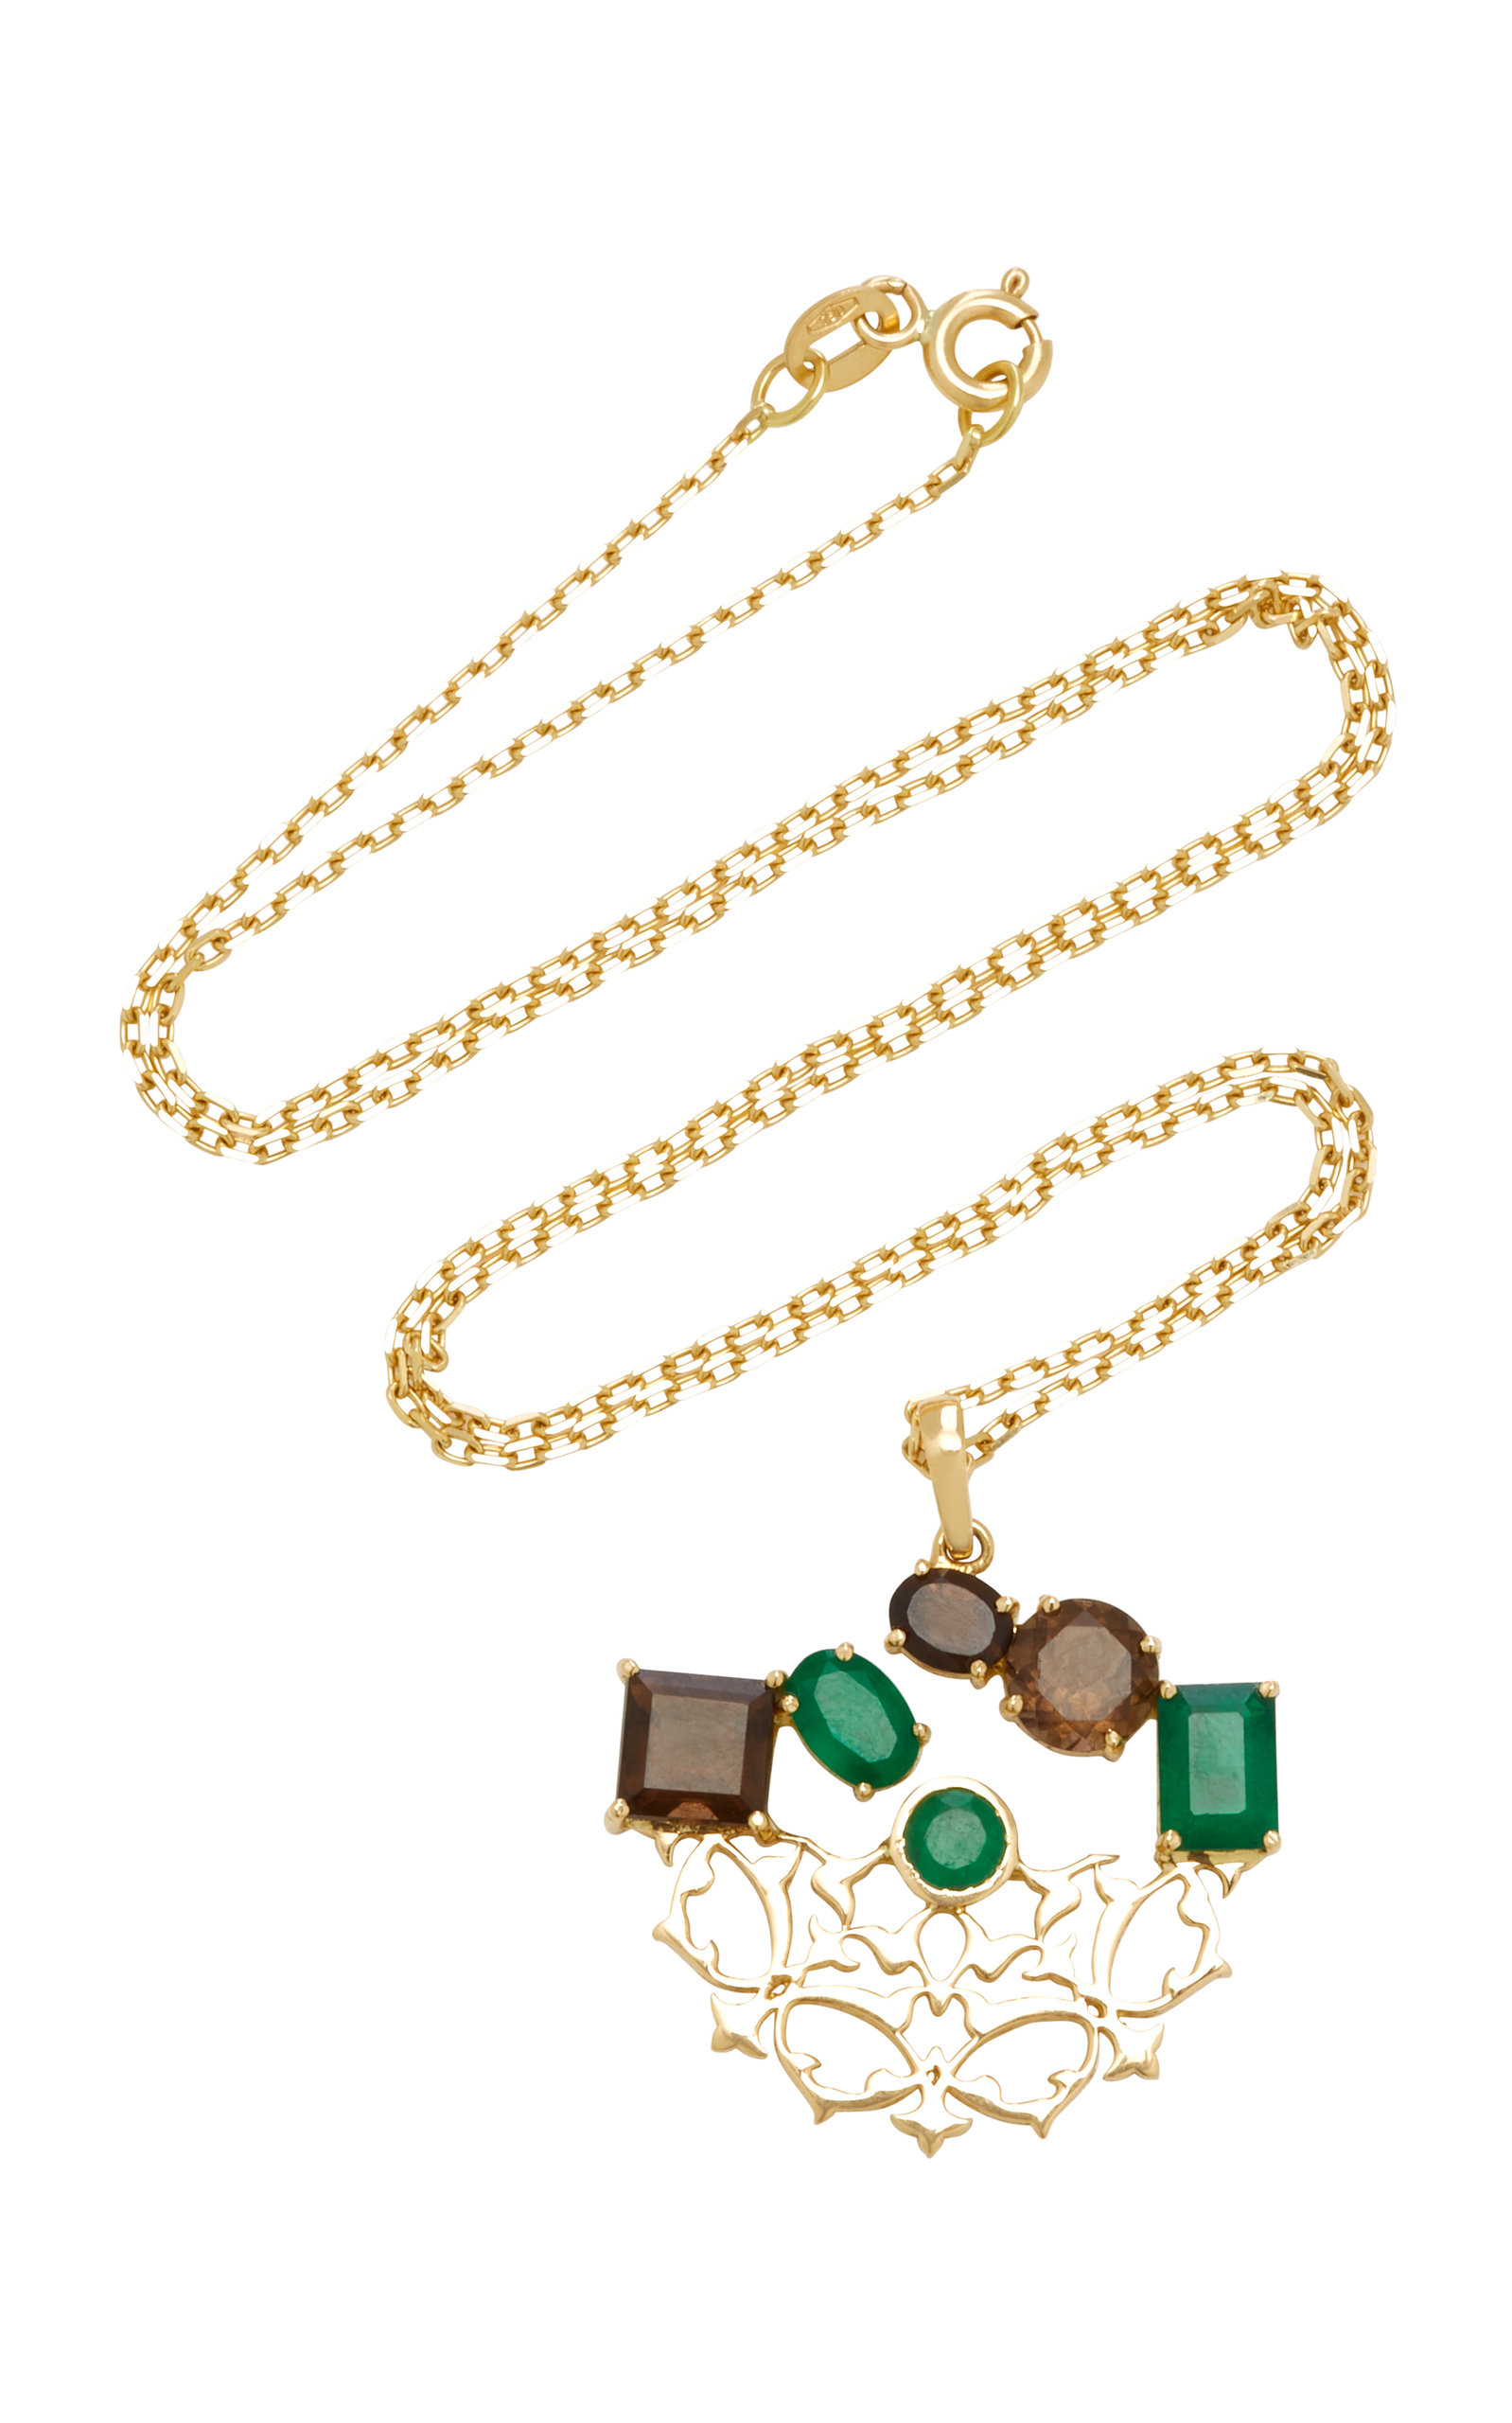 DONNA HOURANI Respect 18K Gold Quartz And Emerald Necklace